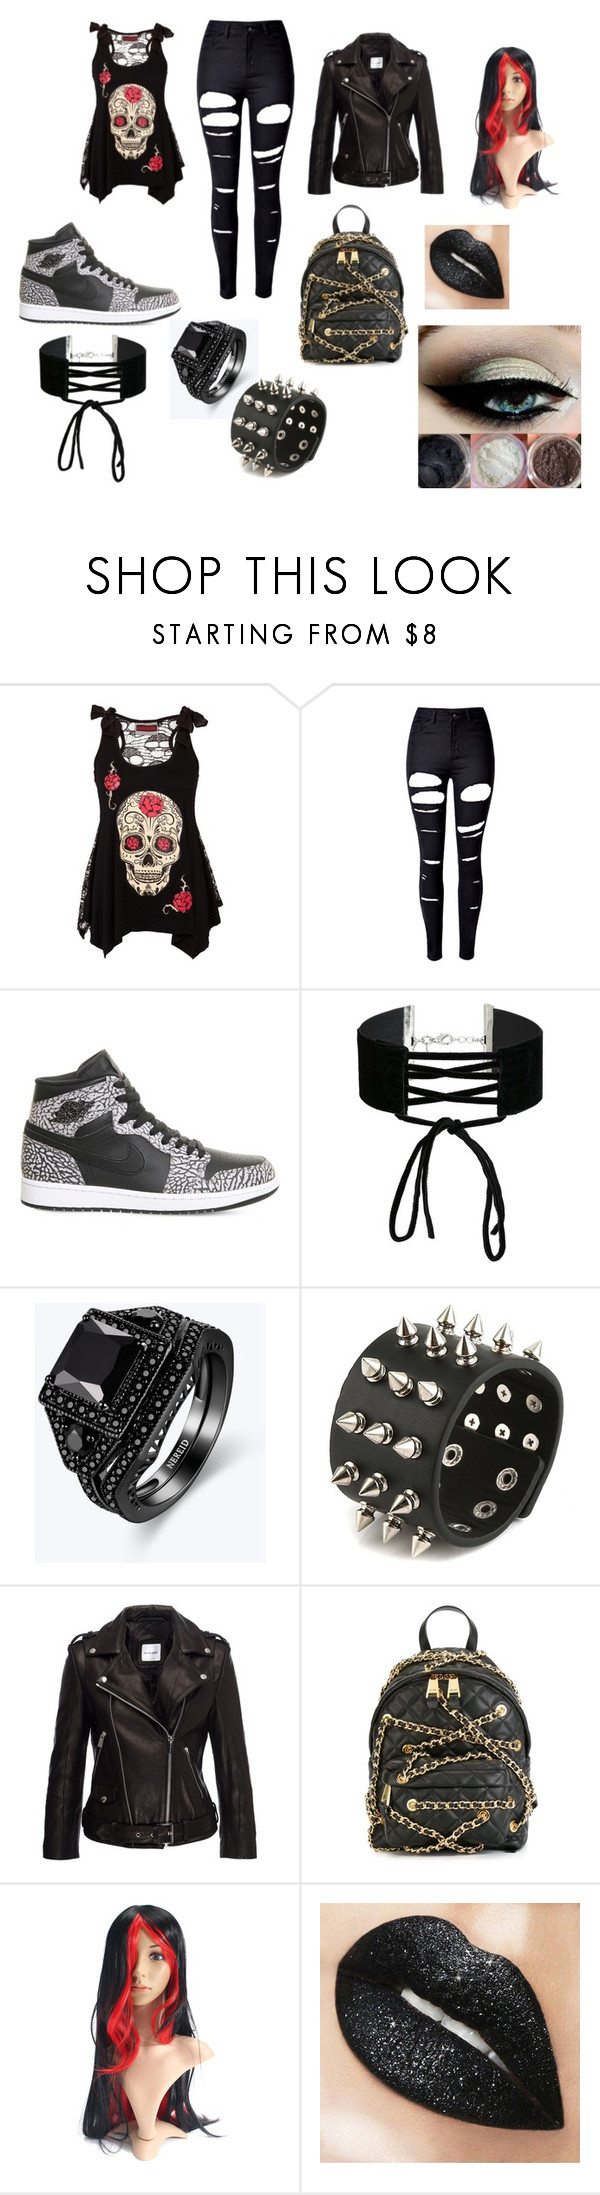 """""""Bad Girl"""" by emma-387 ❤ liked on Polyvore featuring WithChic, NIKE, Miss Selfridge, Anine Bing and Moschino"""